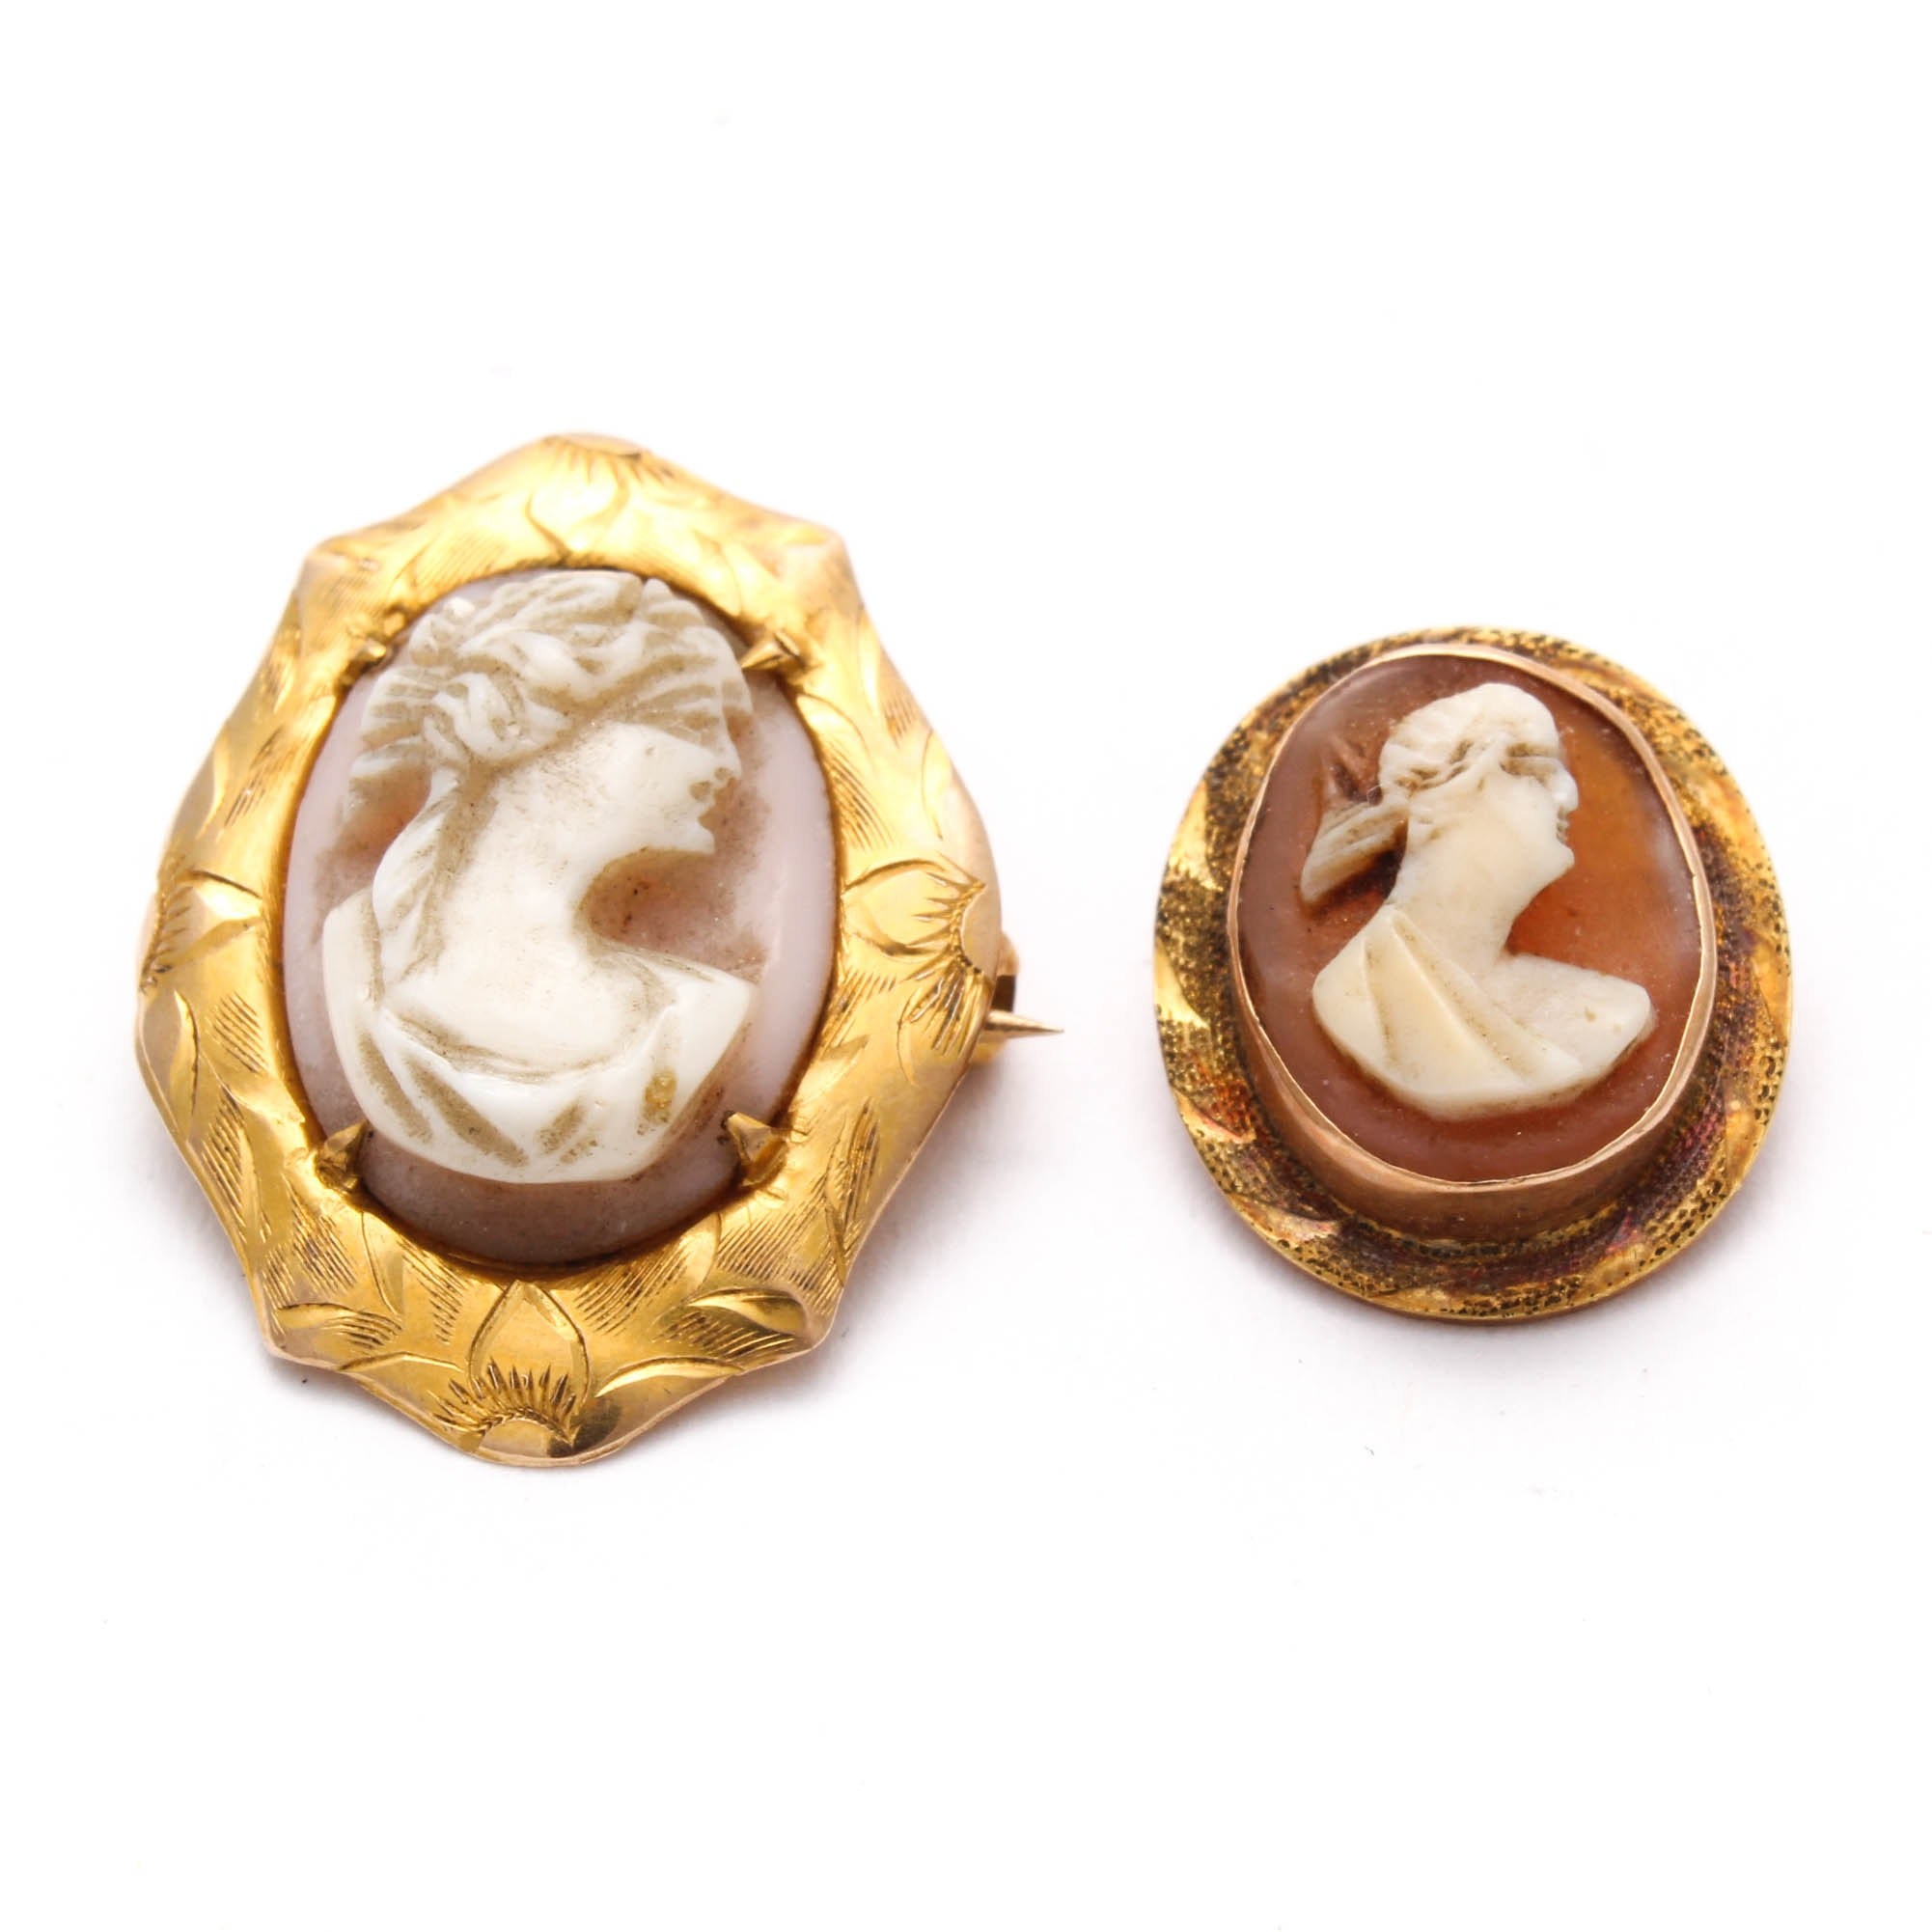 Vintage 10K Yellow Gold Shell Cameo Brooches